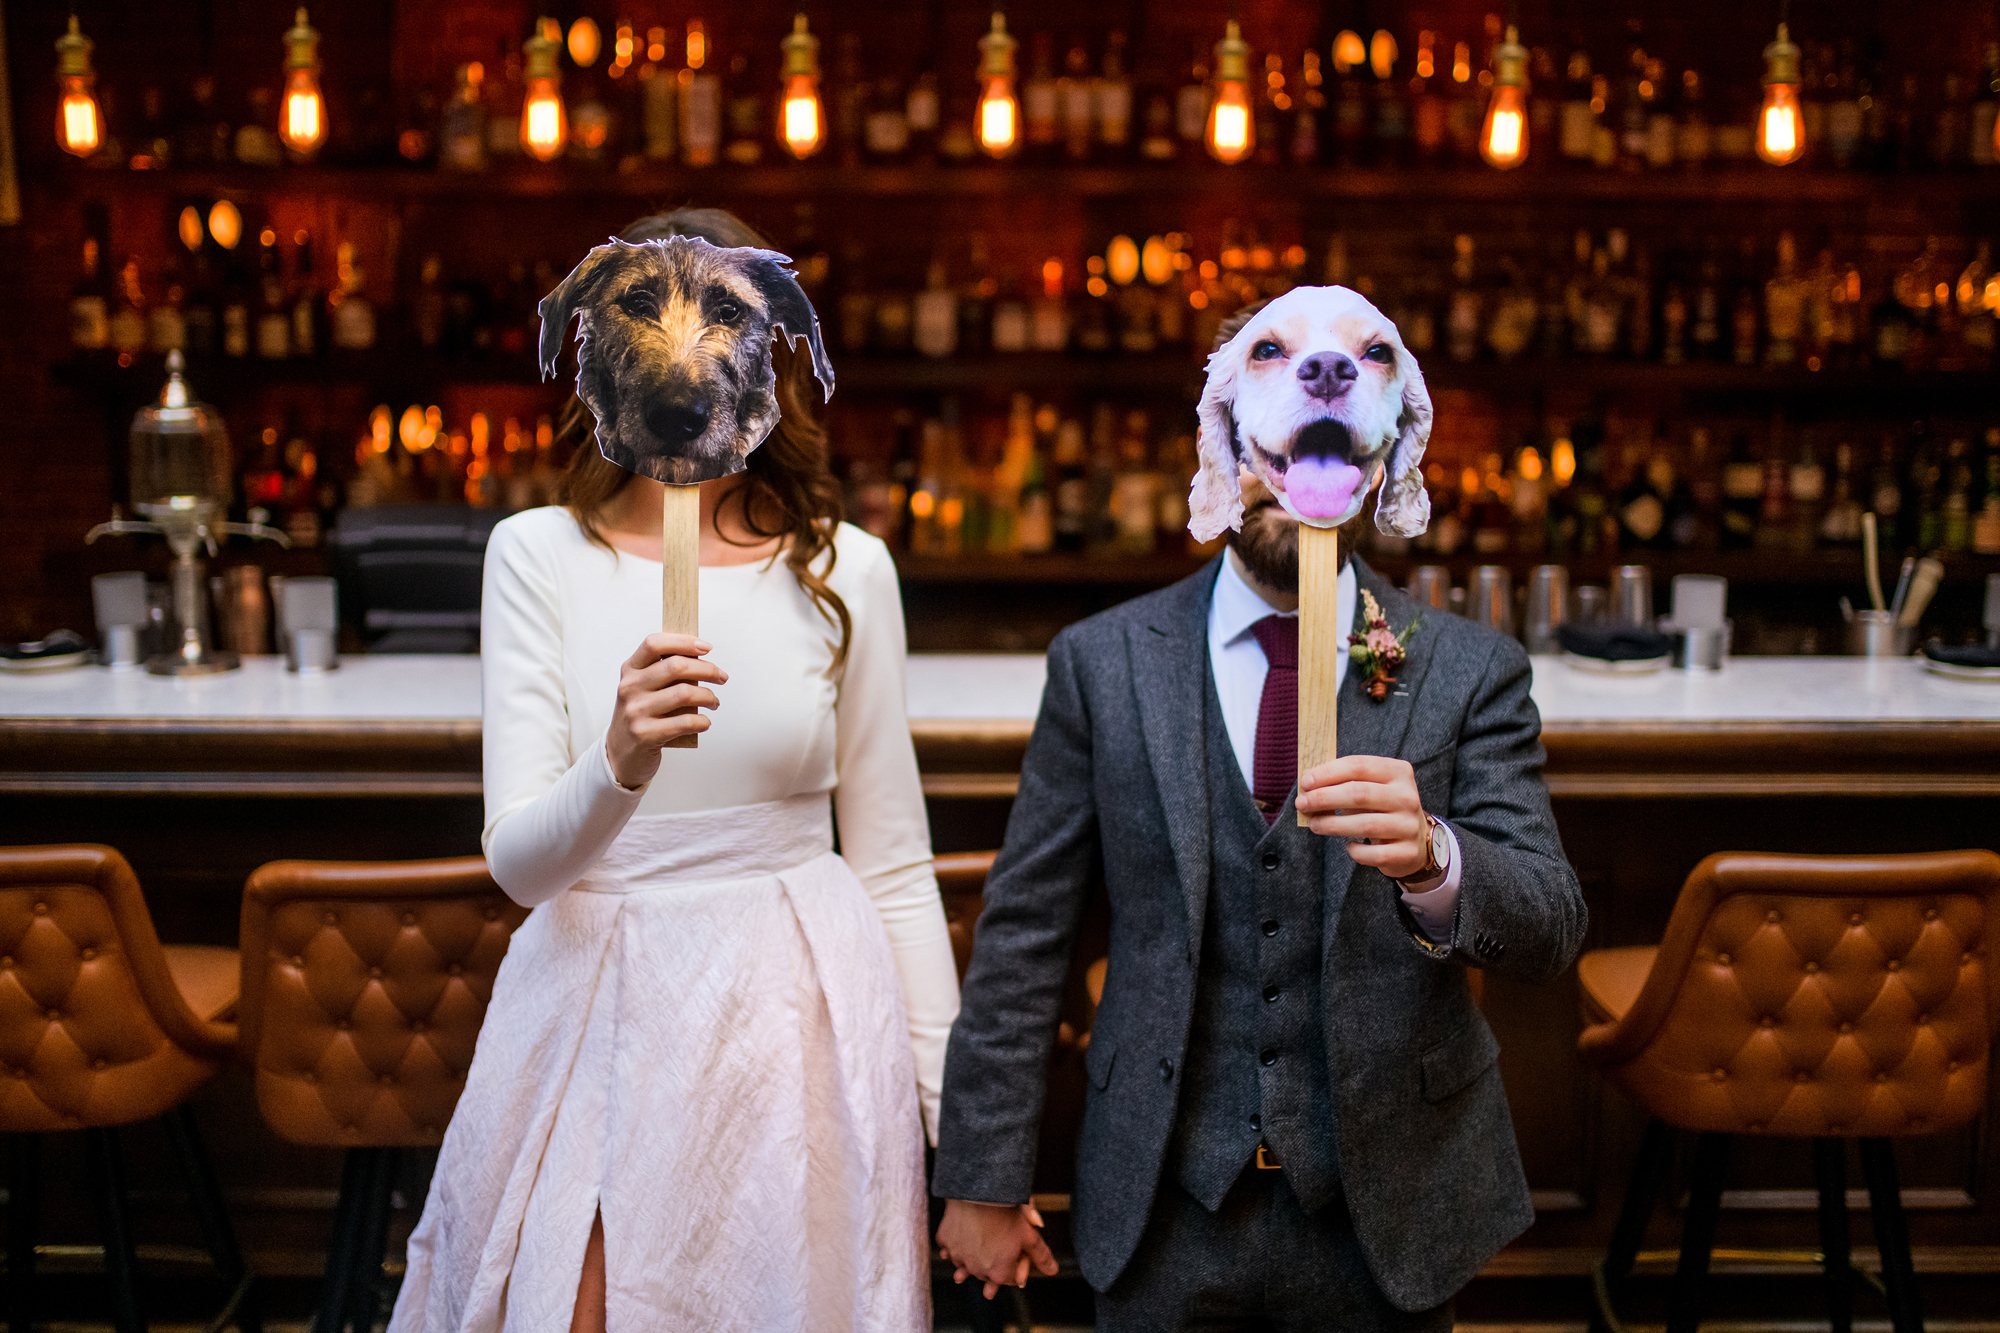 bride-groom-with-doggy-masks-worlds-best-wedding-photos-jeff-cooke-nova-scotia-wedding-photographers